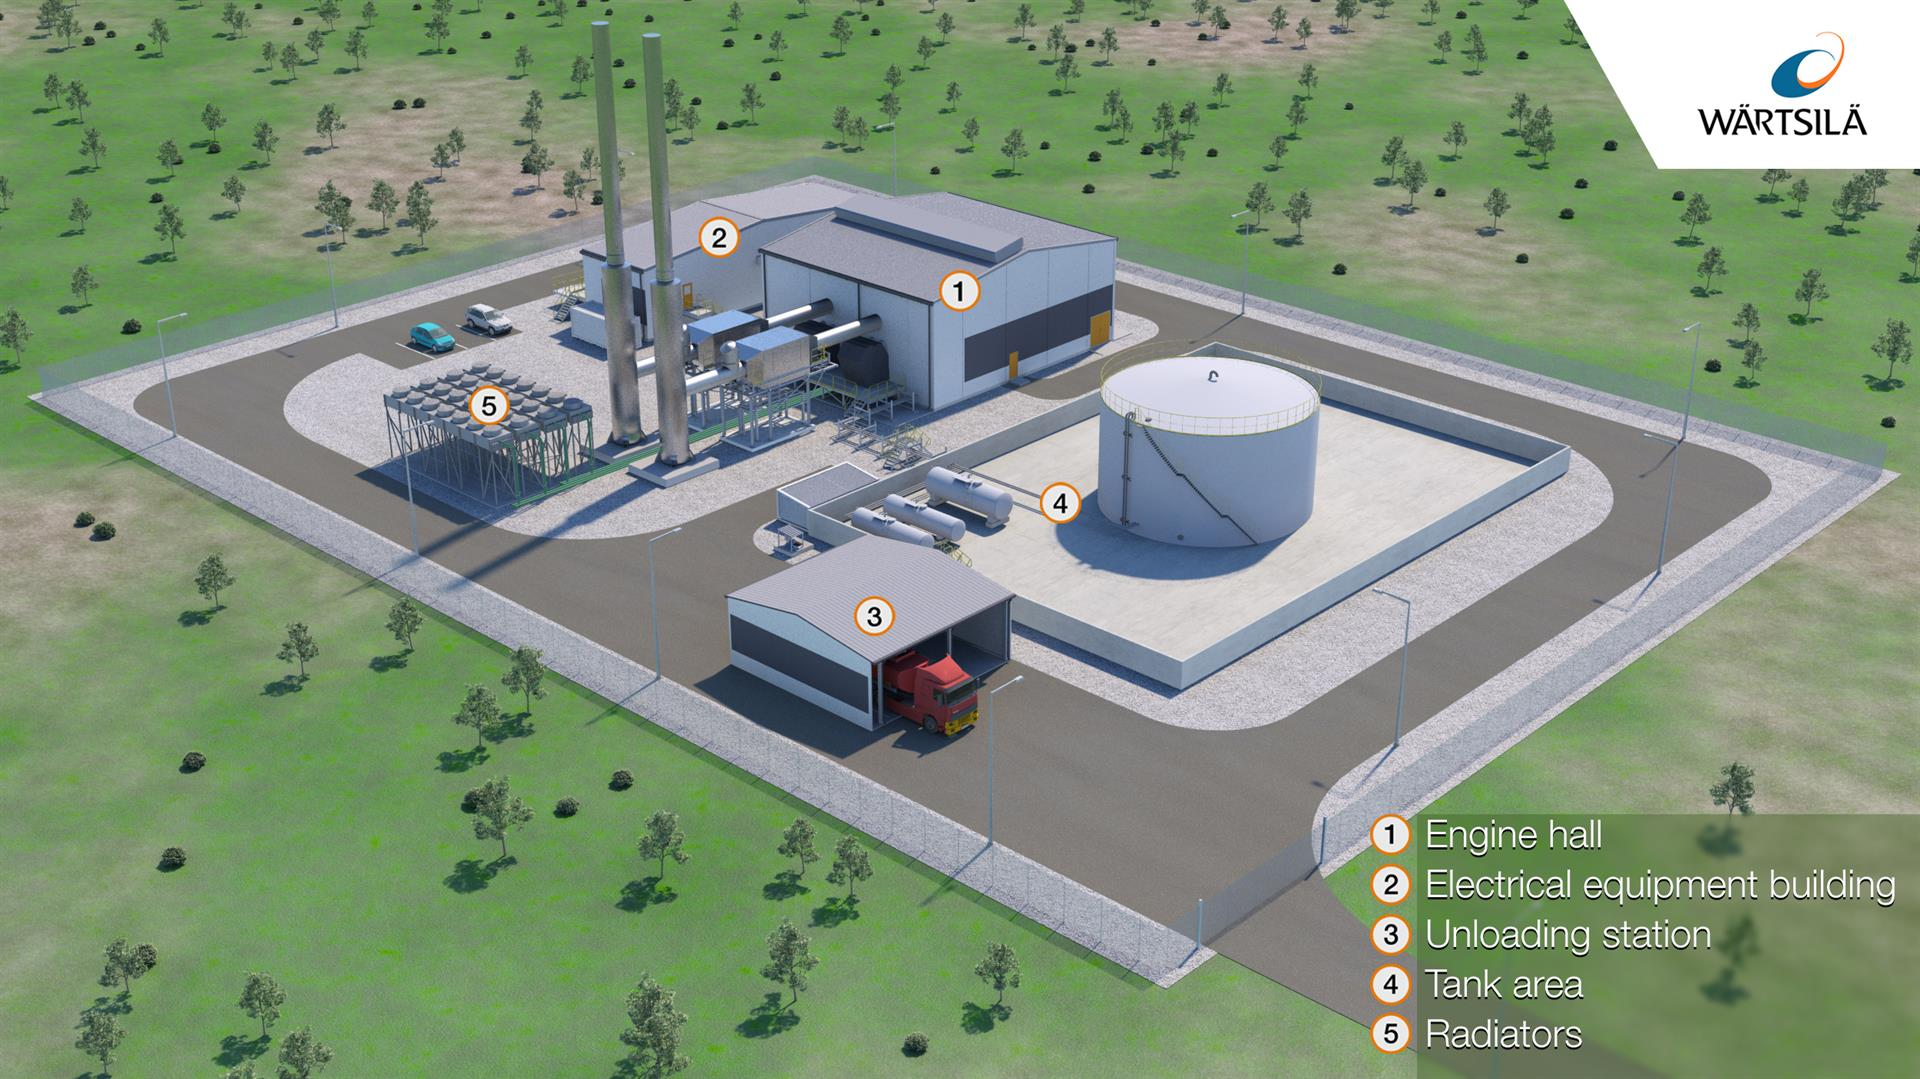 Power plant visualisation